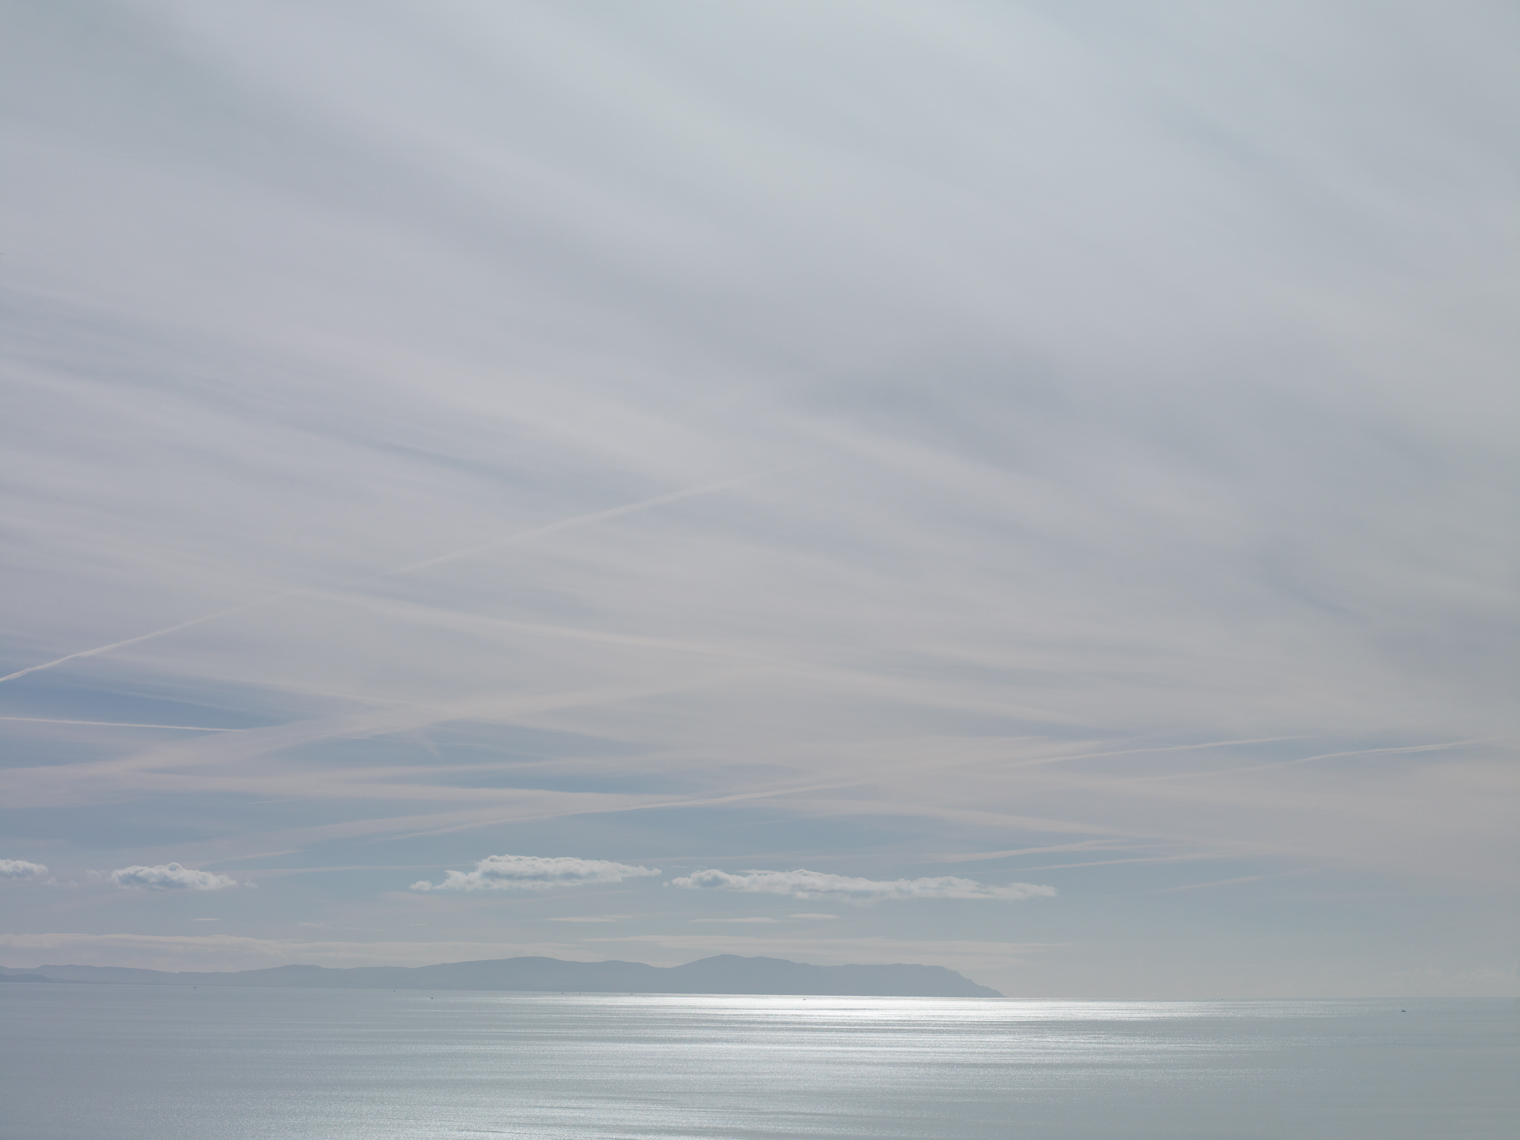 Jon Wyatt Photography - SoundofJura  II - seascape of the Sound of Jura looking towards the Scottish mainland